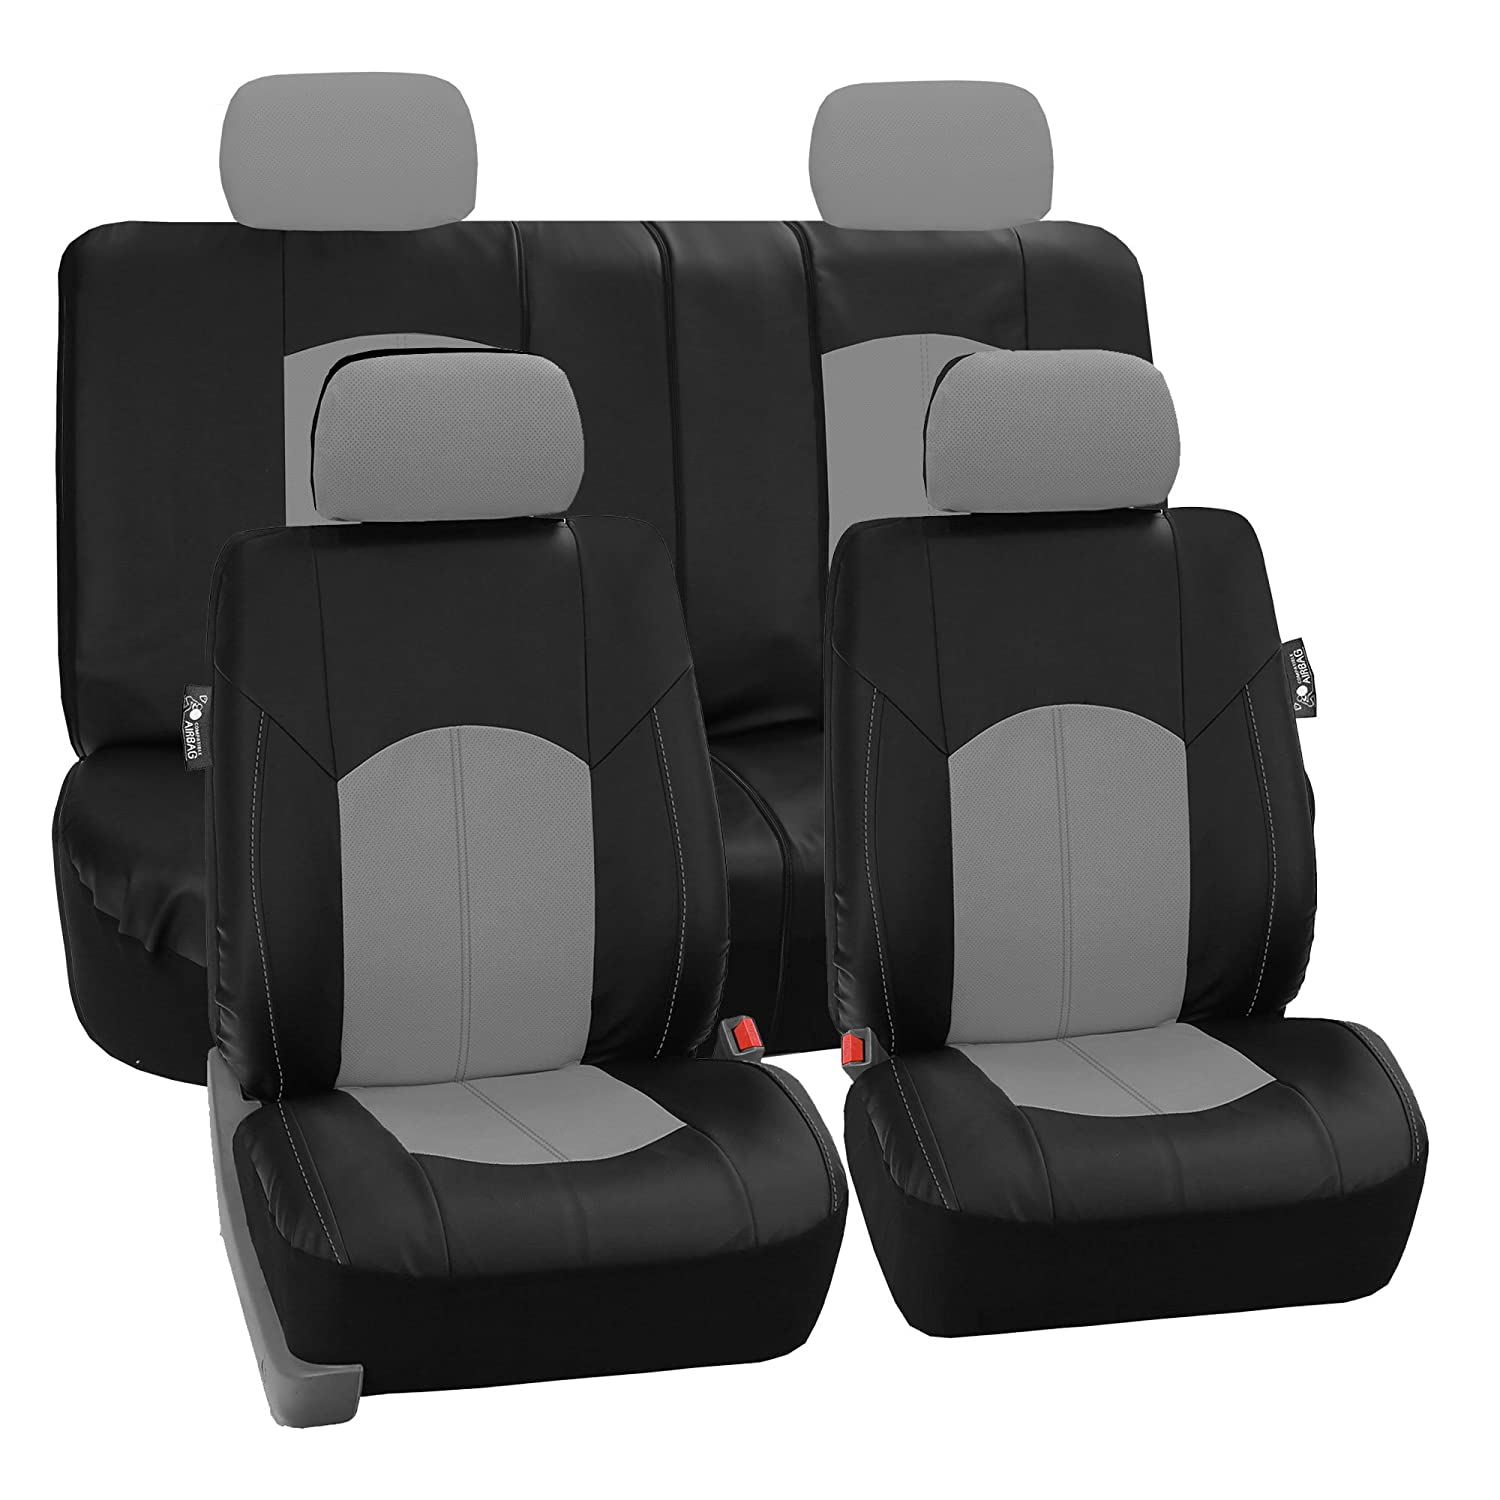 FH GROUP FH-PU001102 Classic Synthetic Leather Pair Set Car Seat Covers Solid Black- Fit Most Car or Van SUV Truck